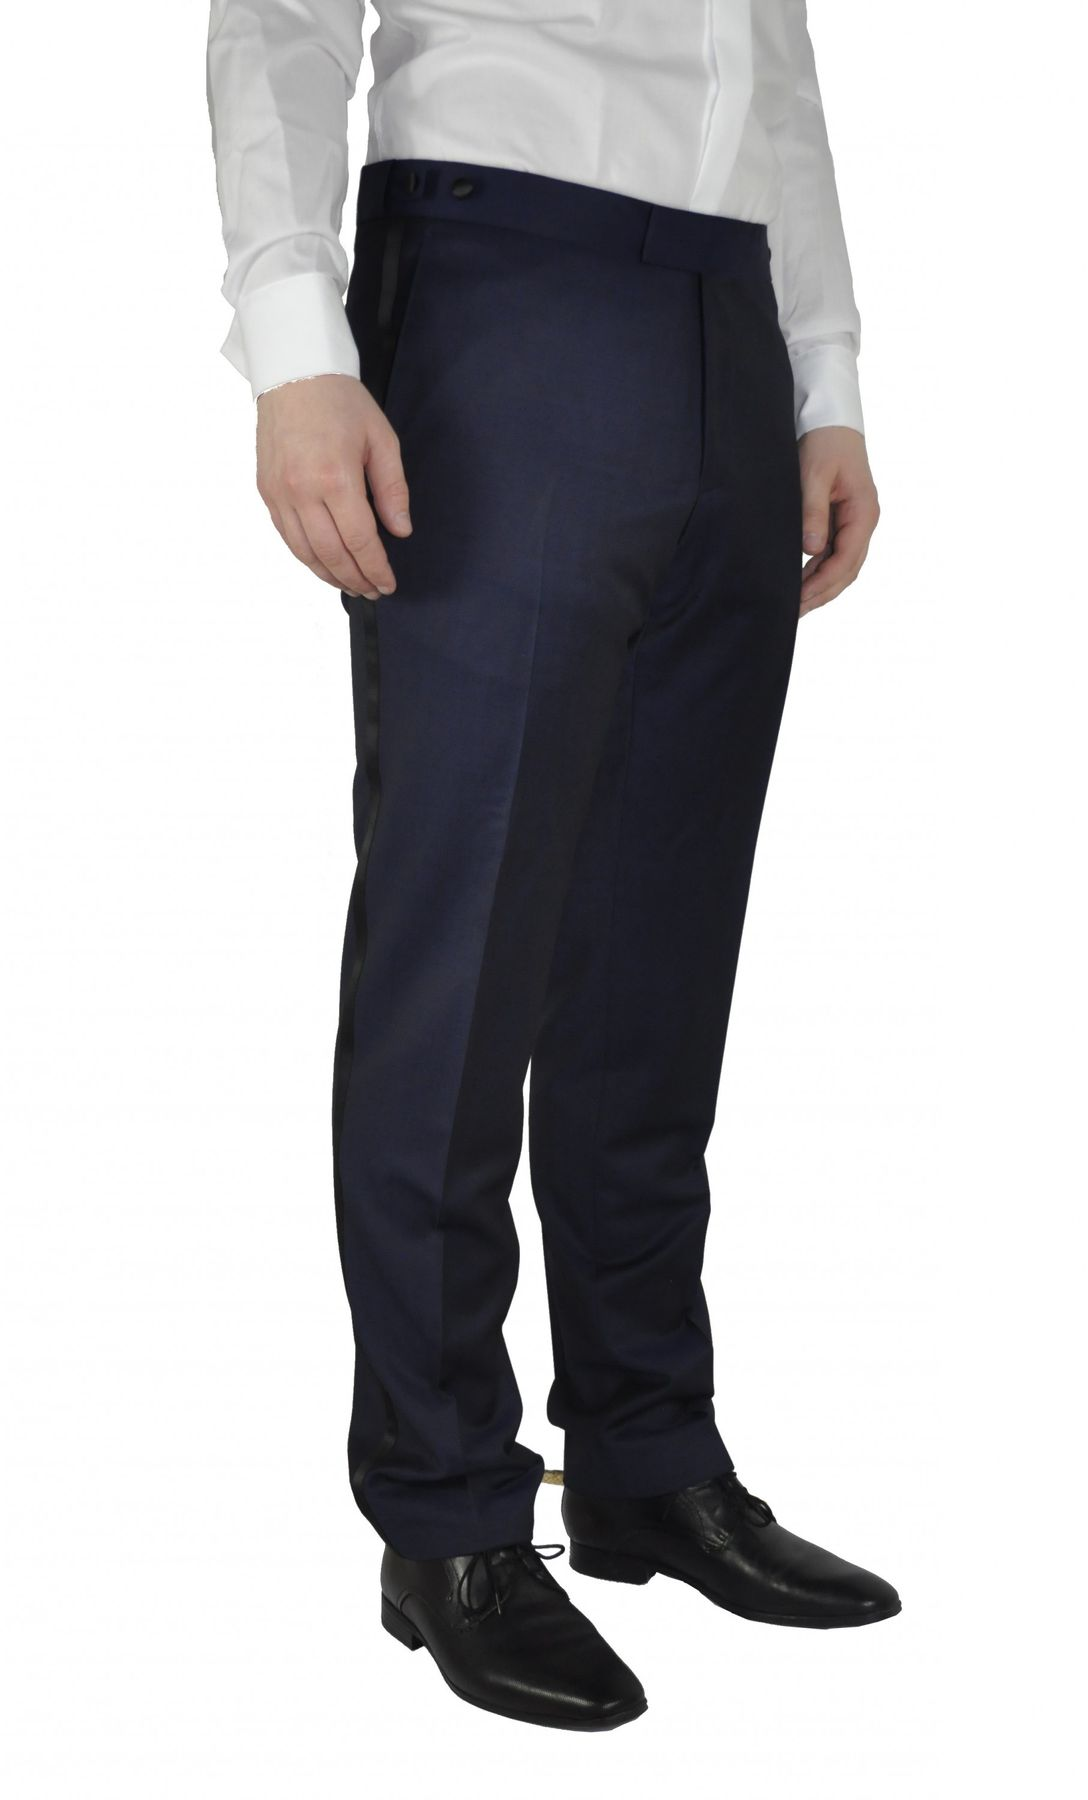 Masterhand - Tailored Fit - Festliche Herren Smoking Hose in Blau, 900 8095 (Tam) – Bild 1